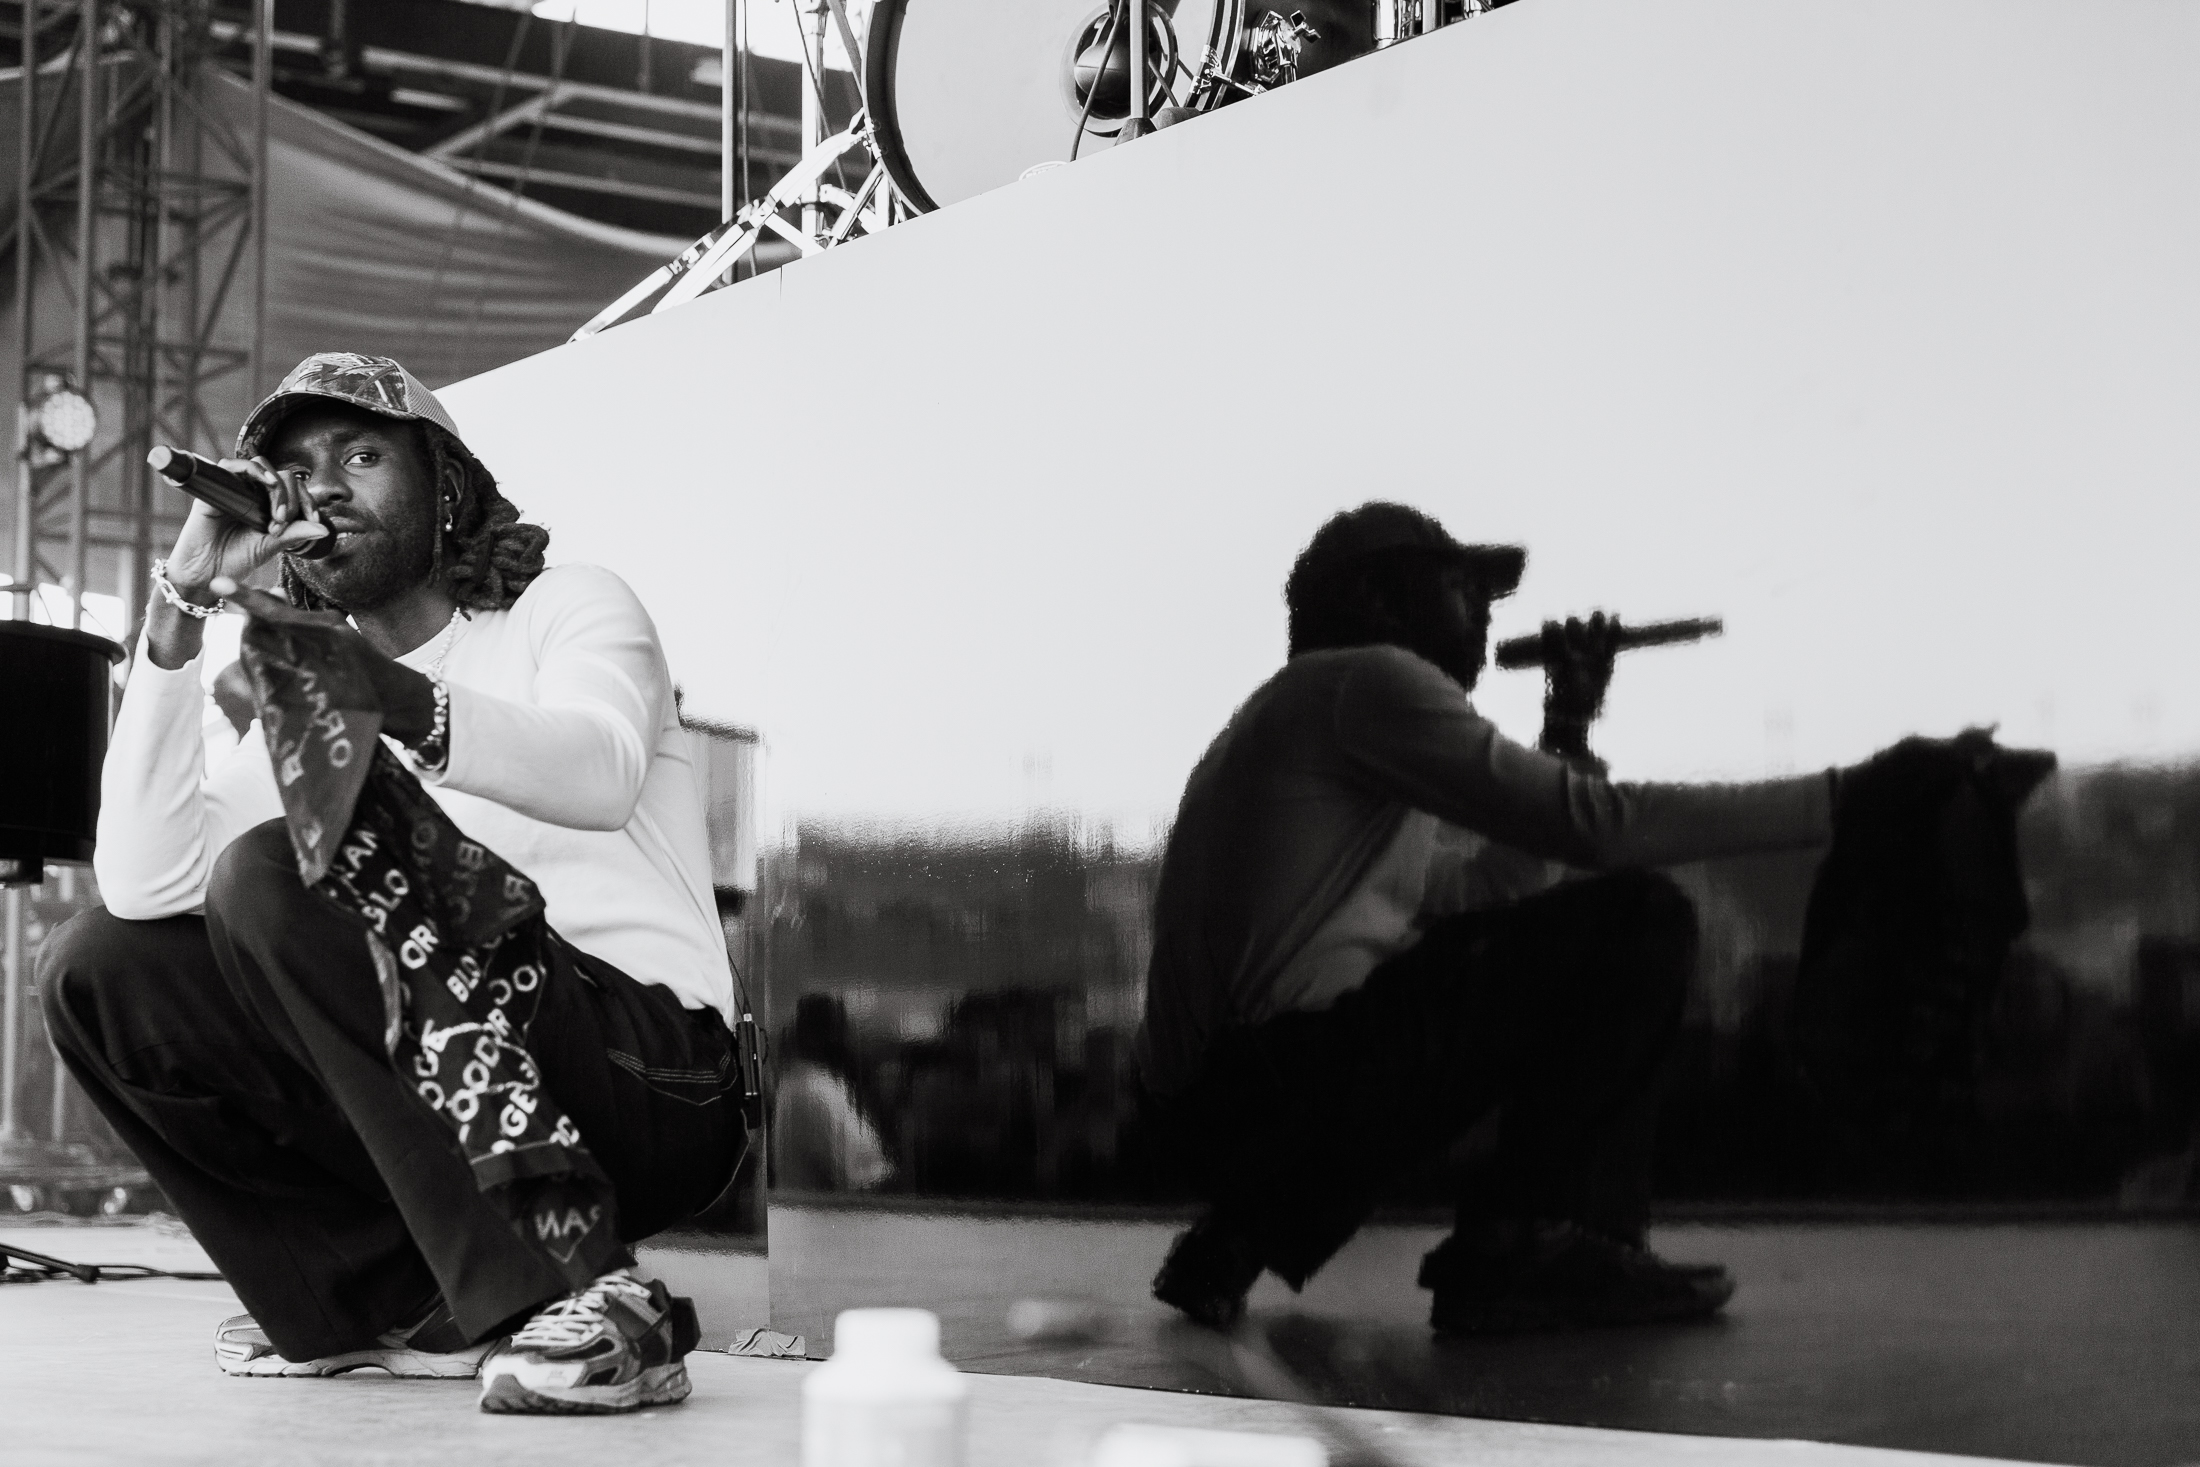 Blood Orange opening for Florence and the Machine at Huntington Bank Pavilion in Chicago, IL (Photo by  Alex Schelldorf )